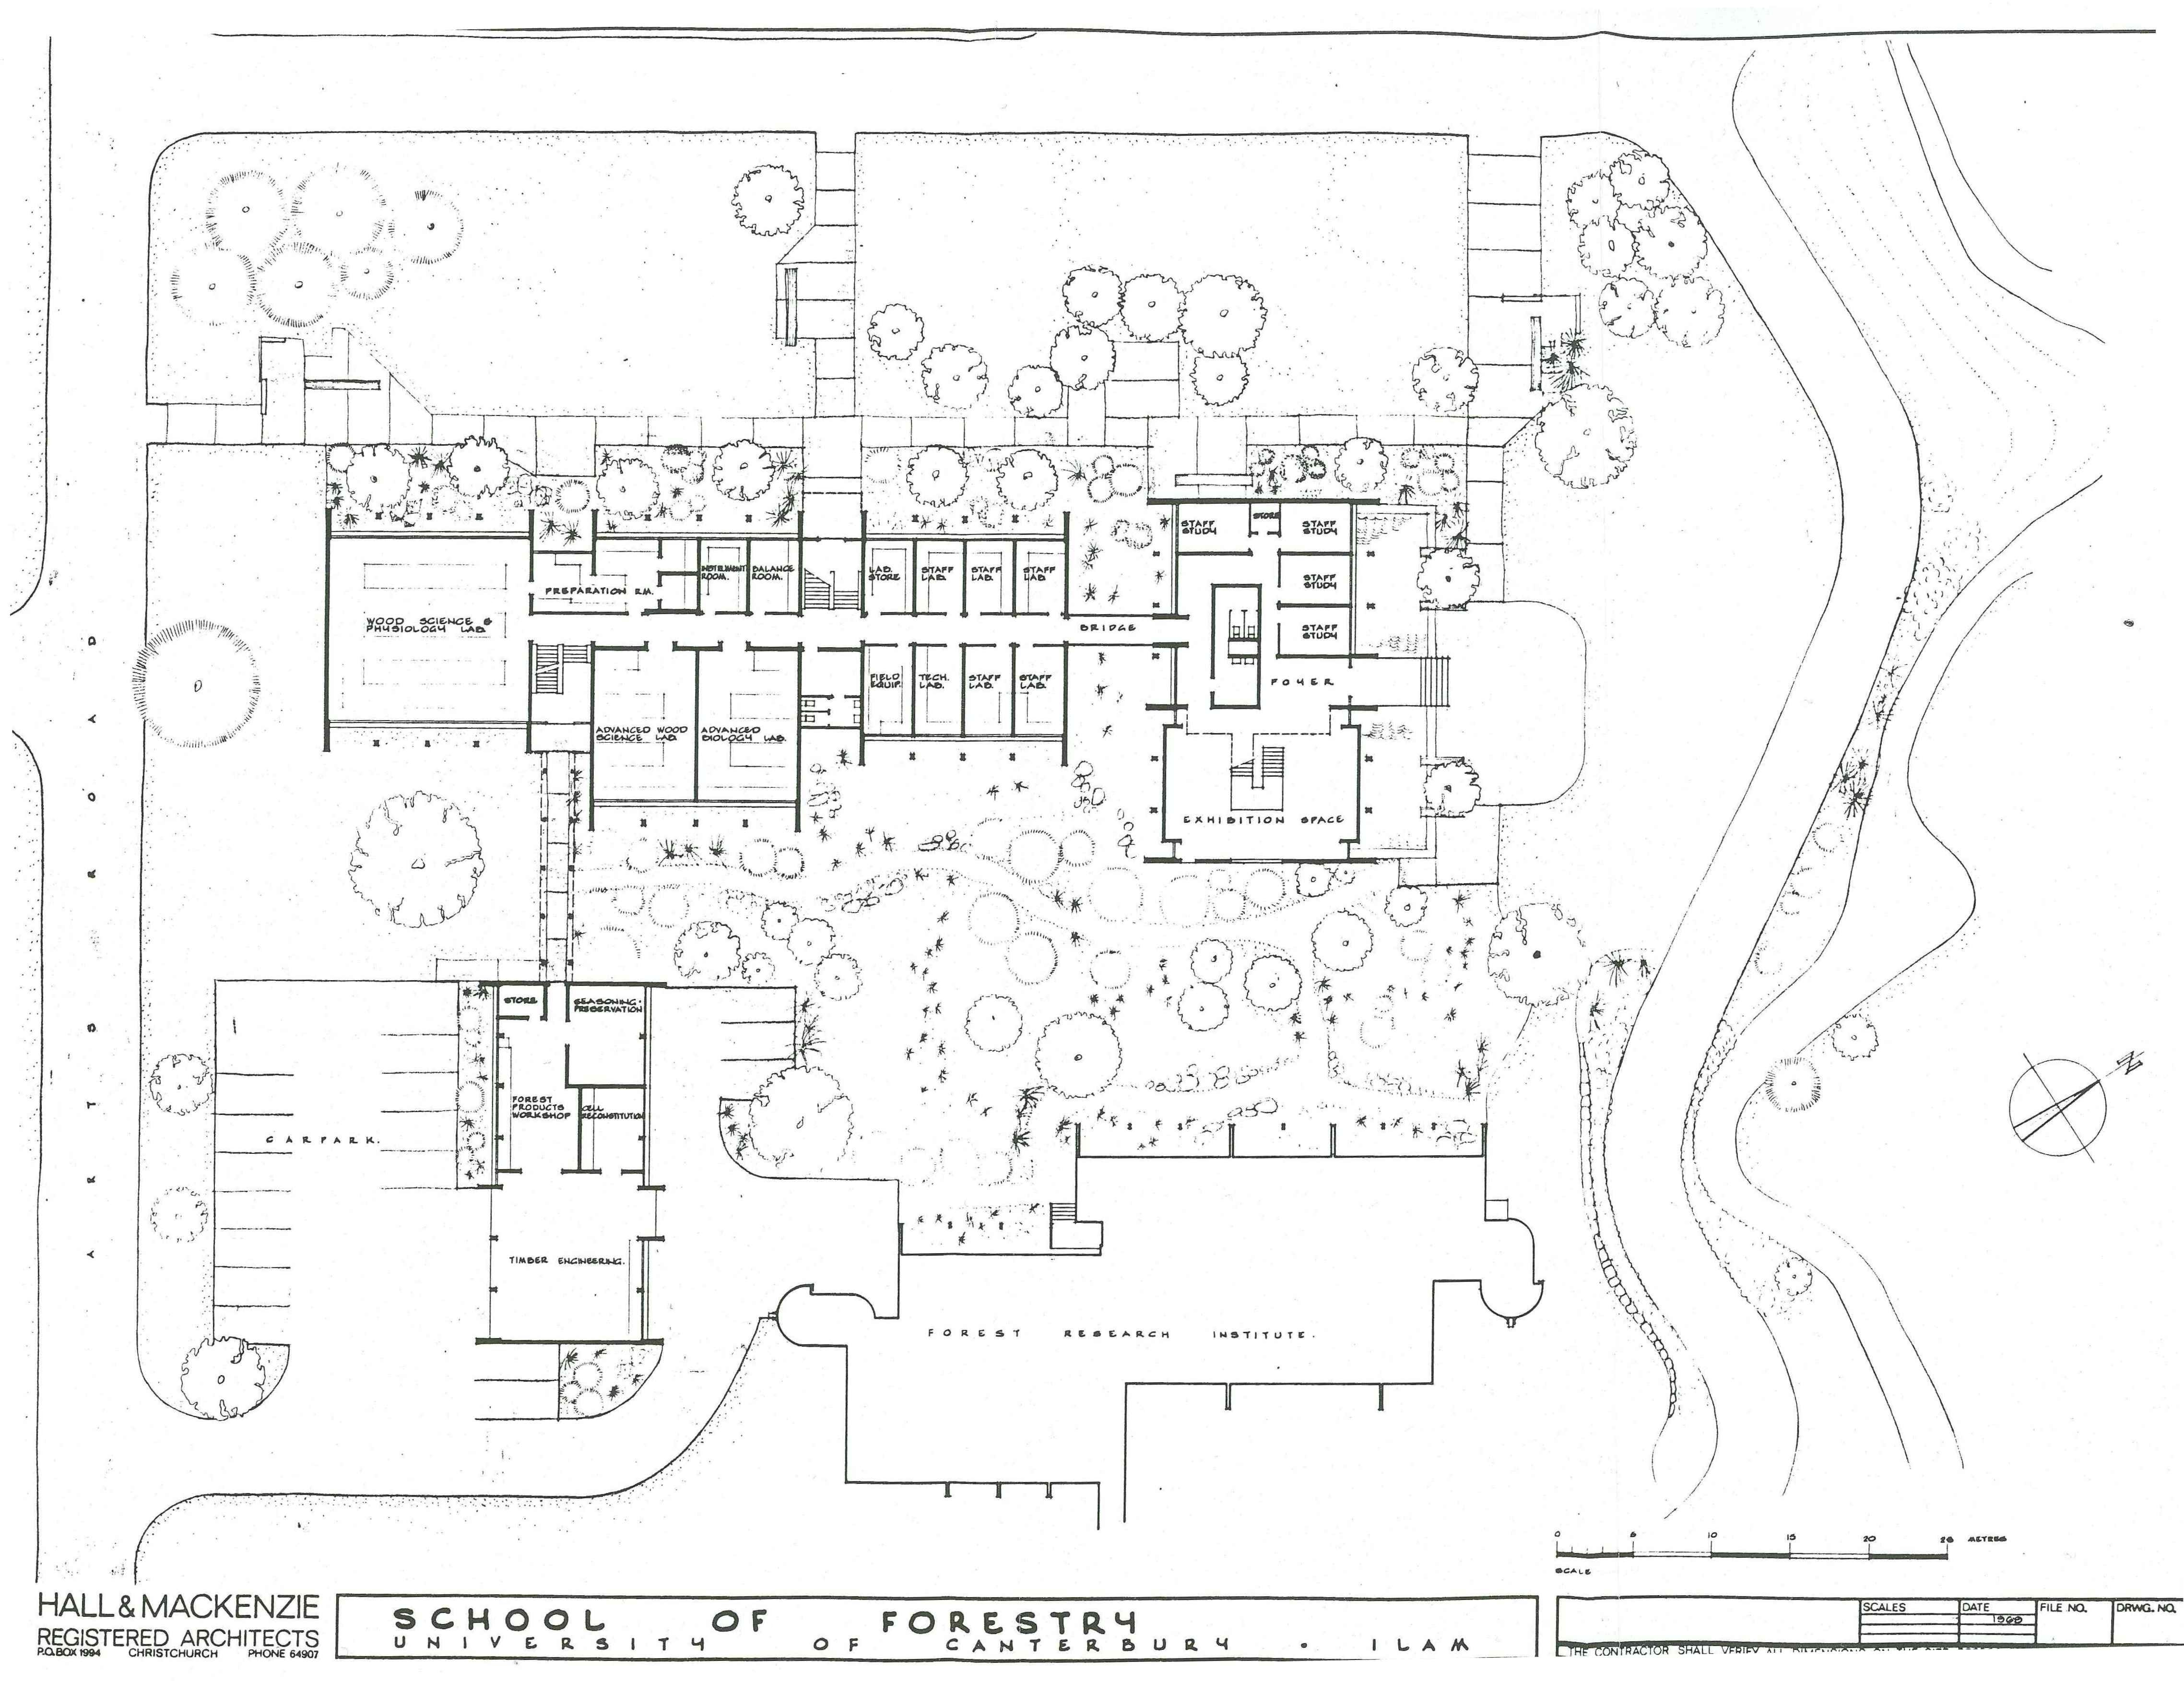 House building drawing at getdrawings free for personal use 4553x3508 collection architect plans photos malvernweather Choice Image